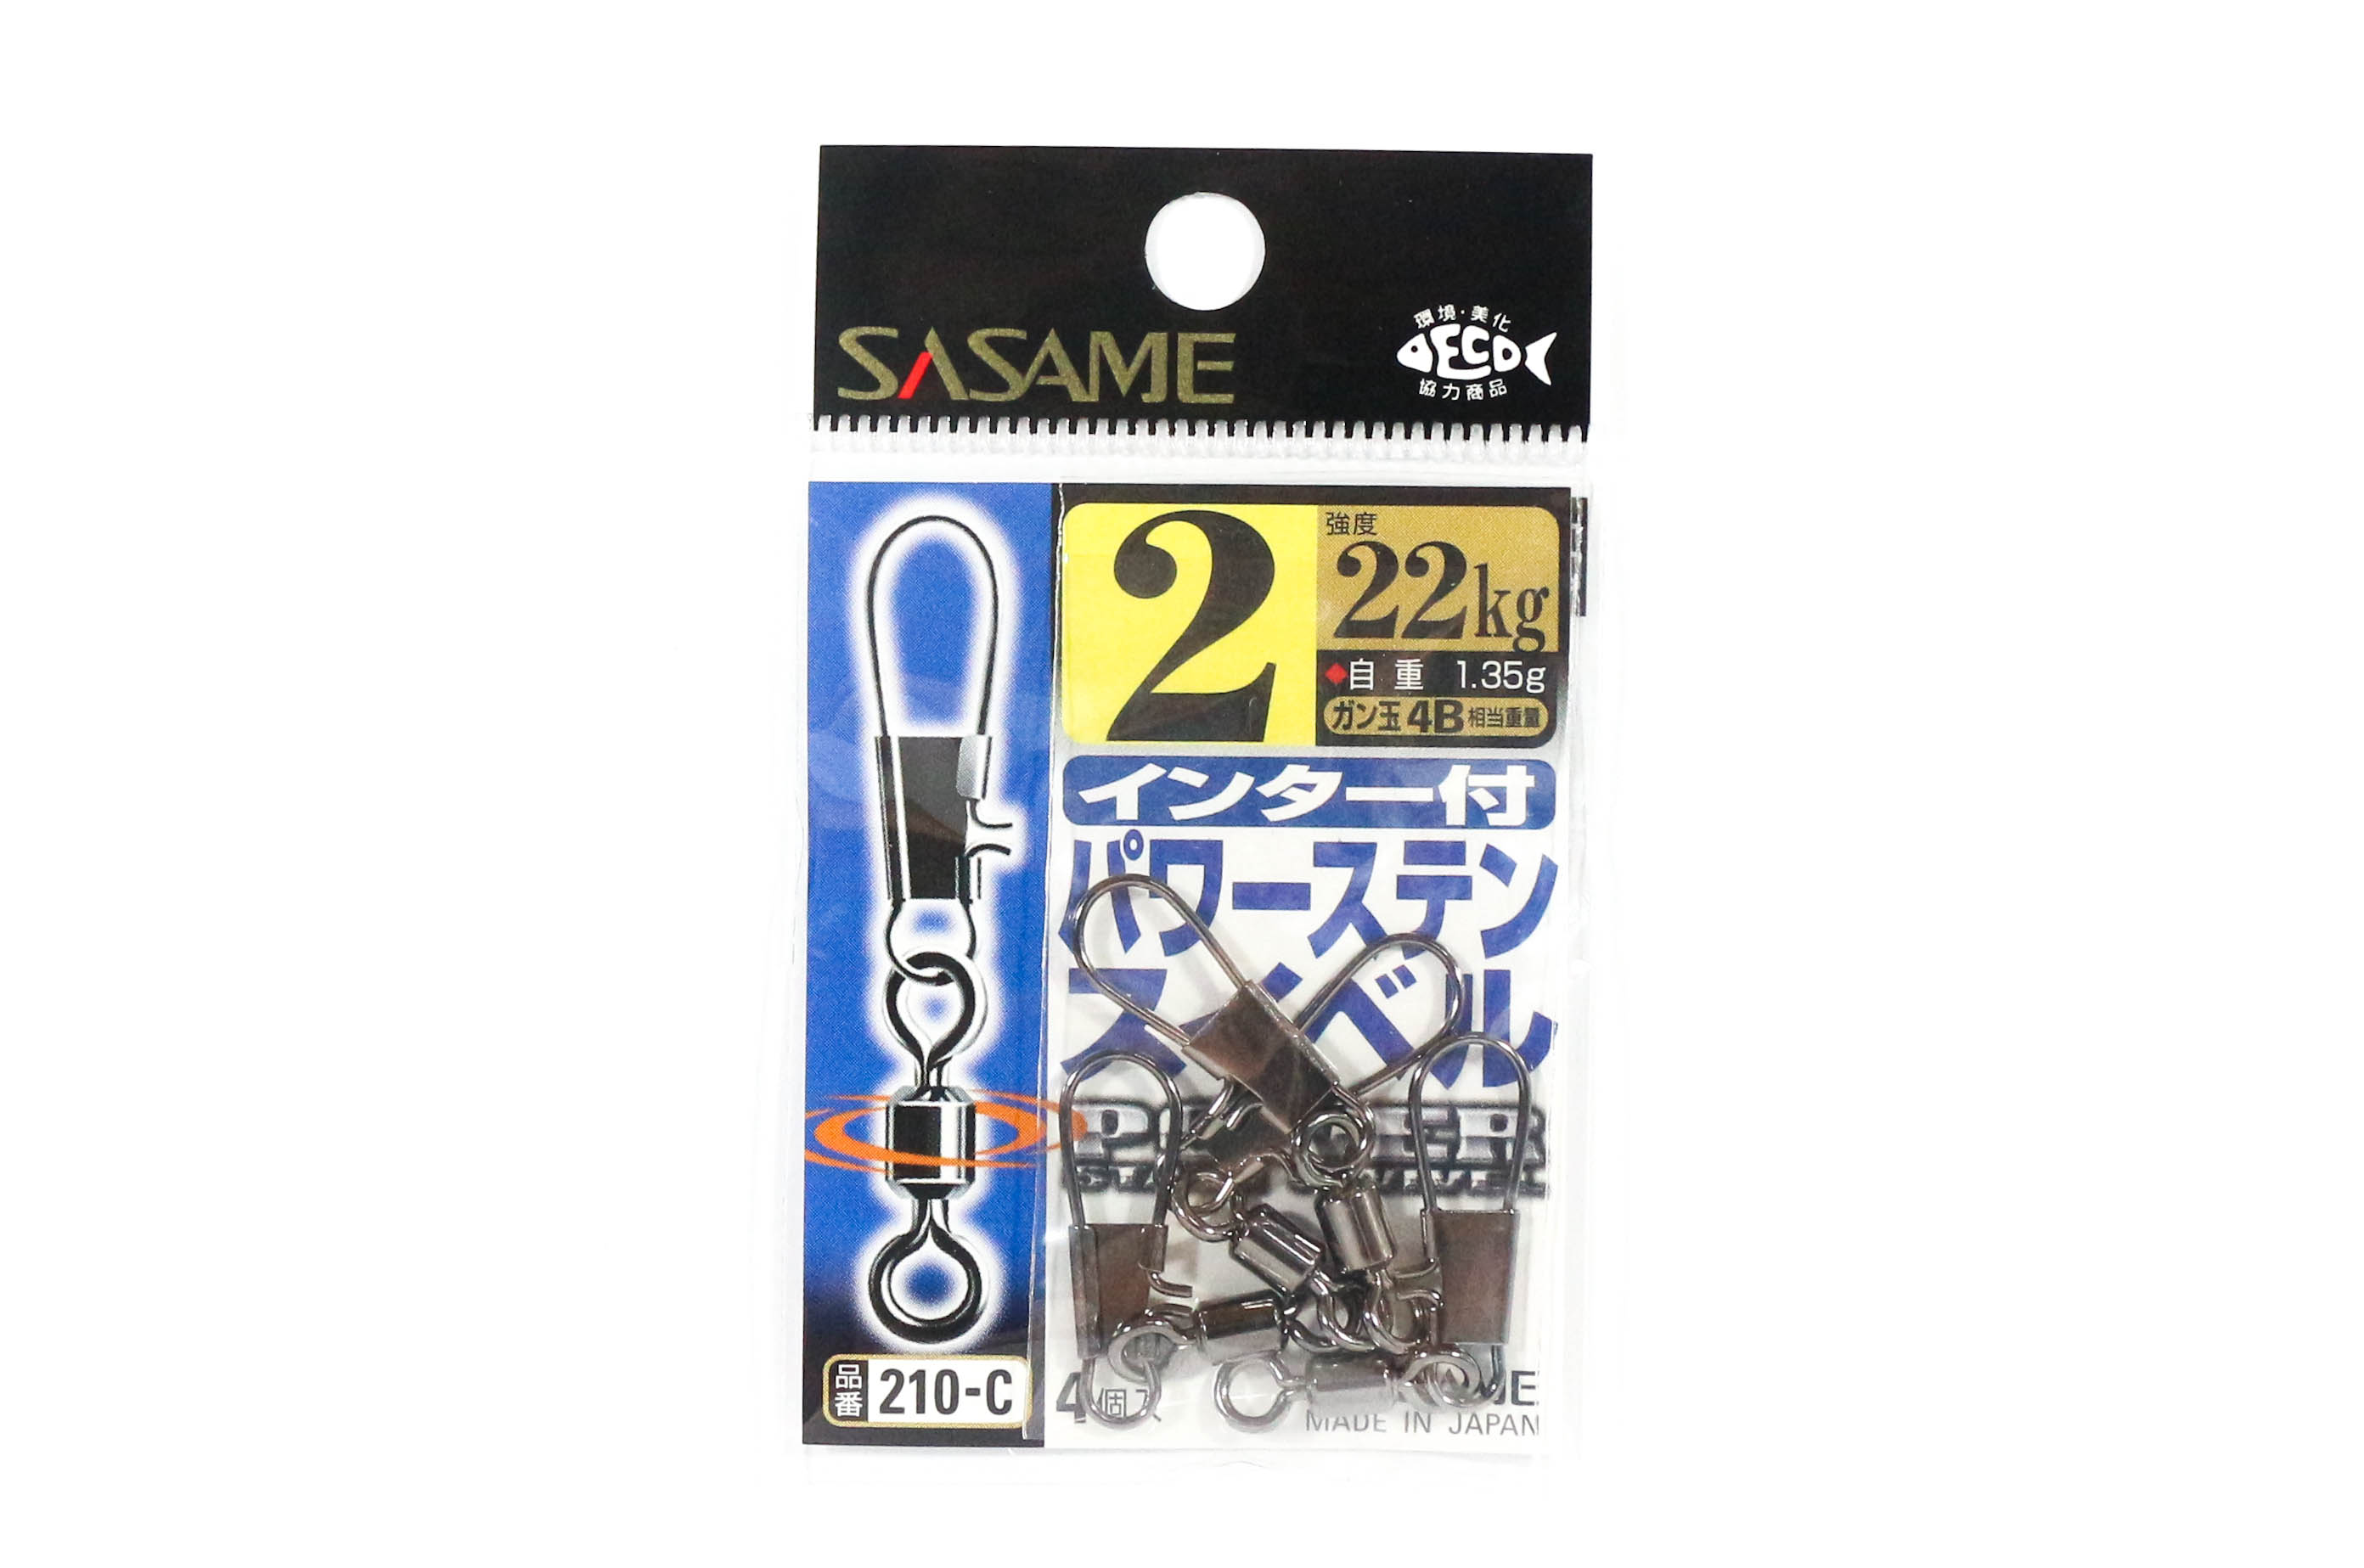 Sasame 210-C Power Stain Snap Swivel Smooth Spin Black Size 2 (1218)